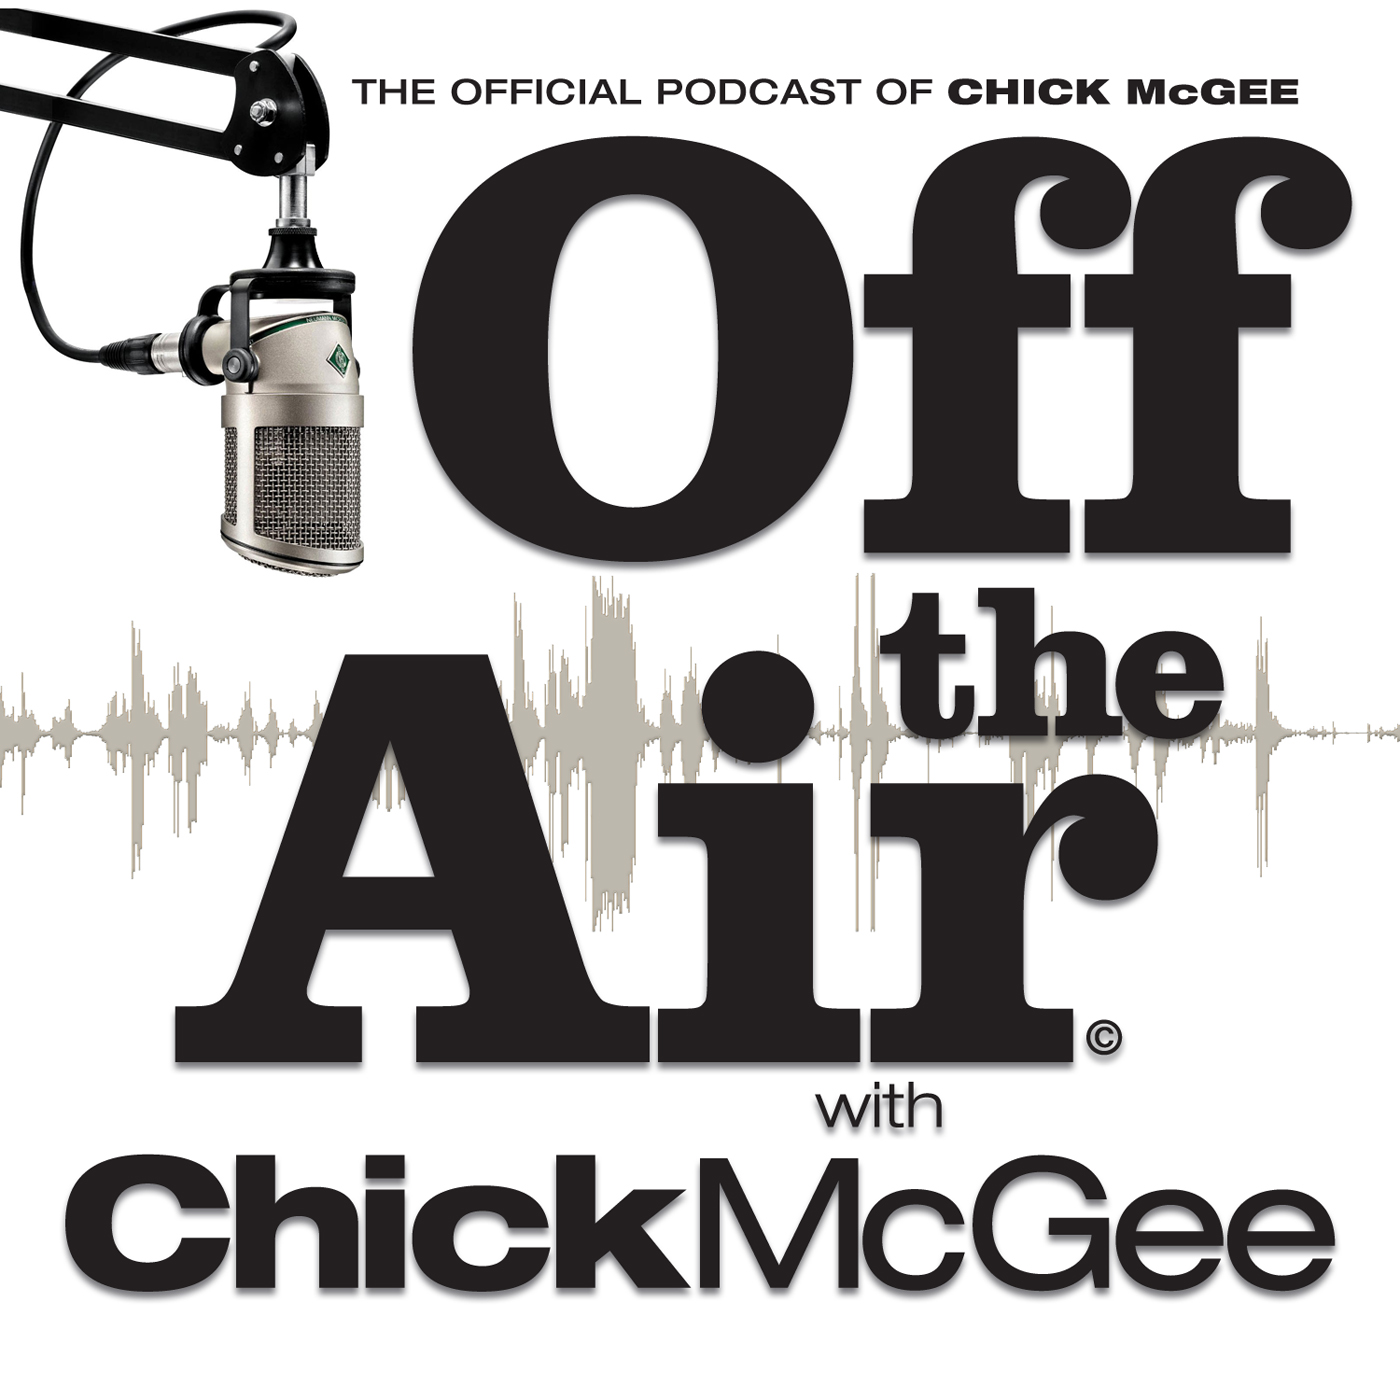 Off the Air - Chick McGee